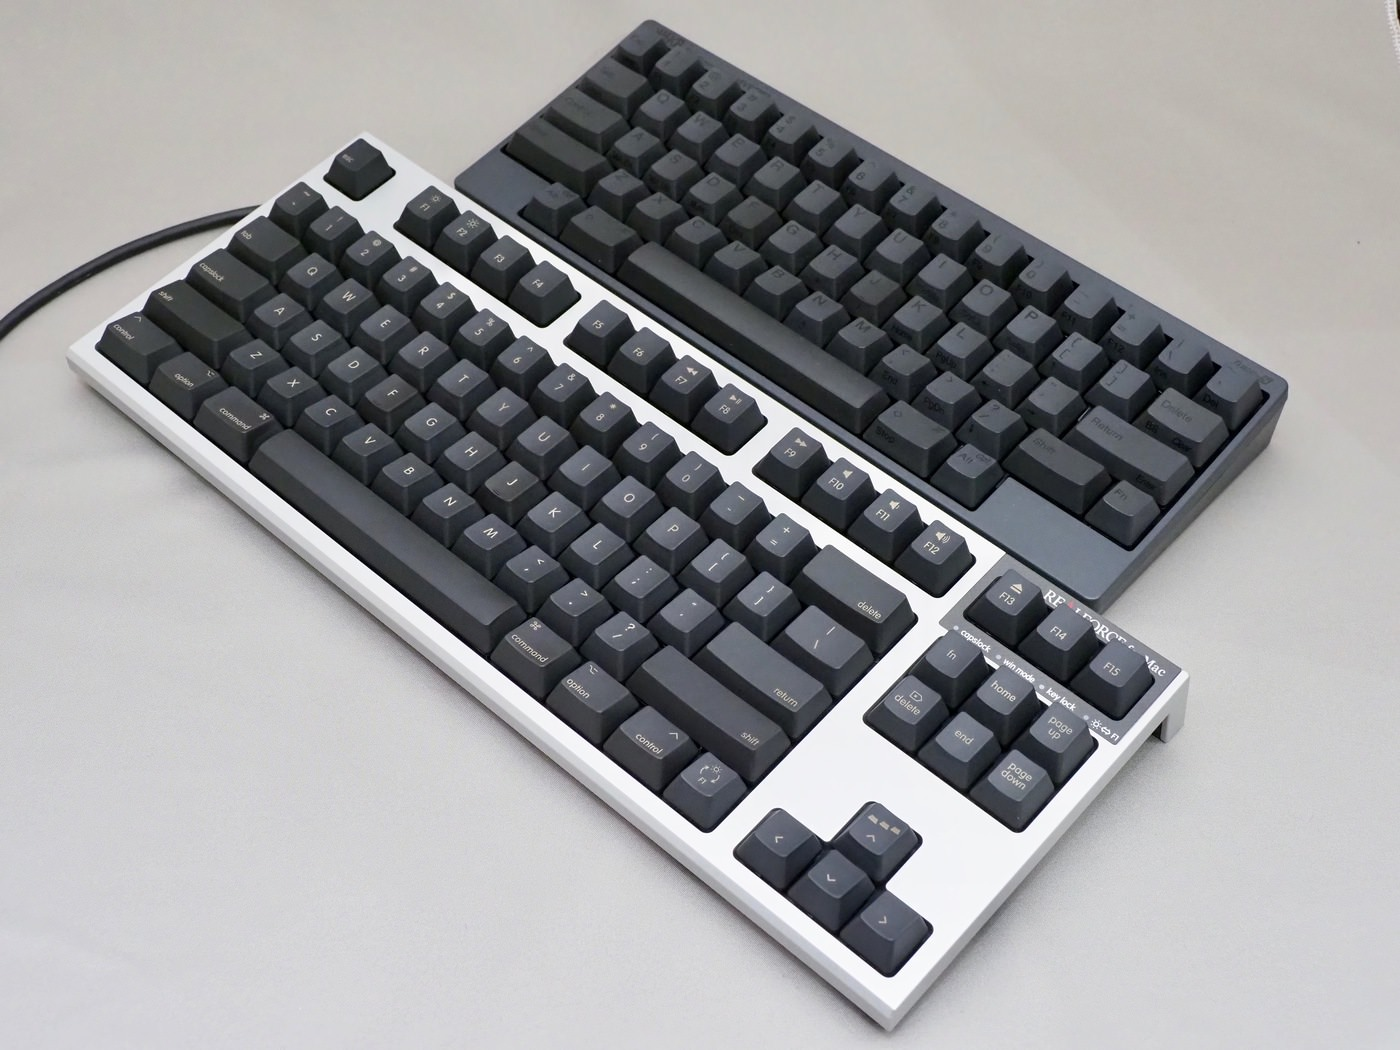 realforce-tkl-for-mac-pfu-limited-edition-review_00034-1